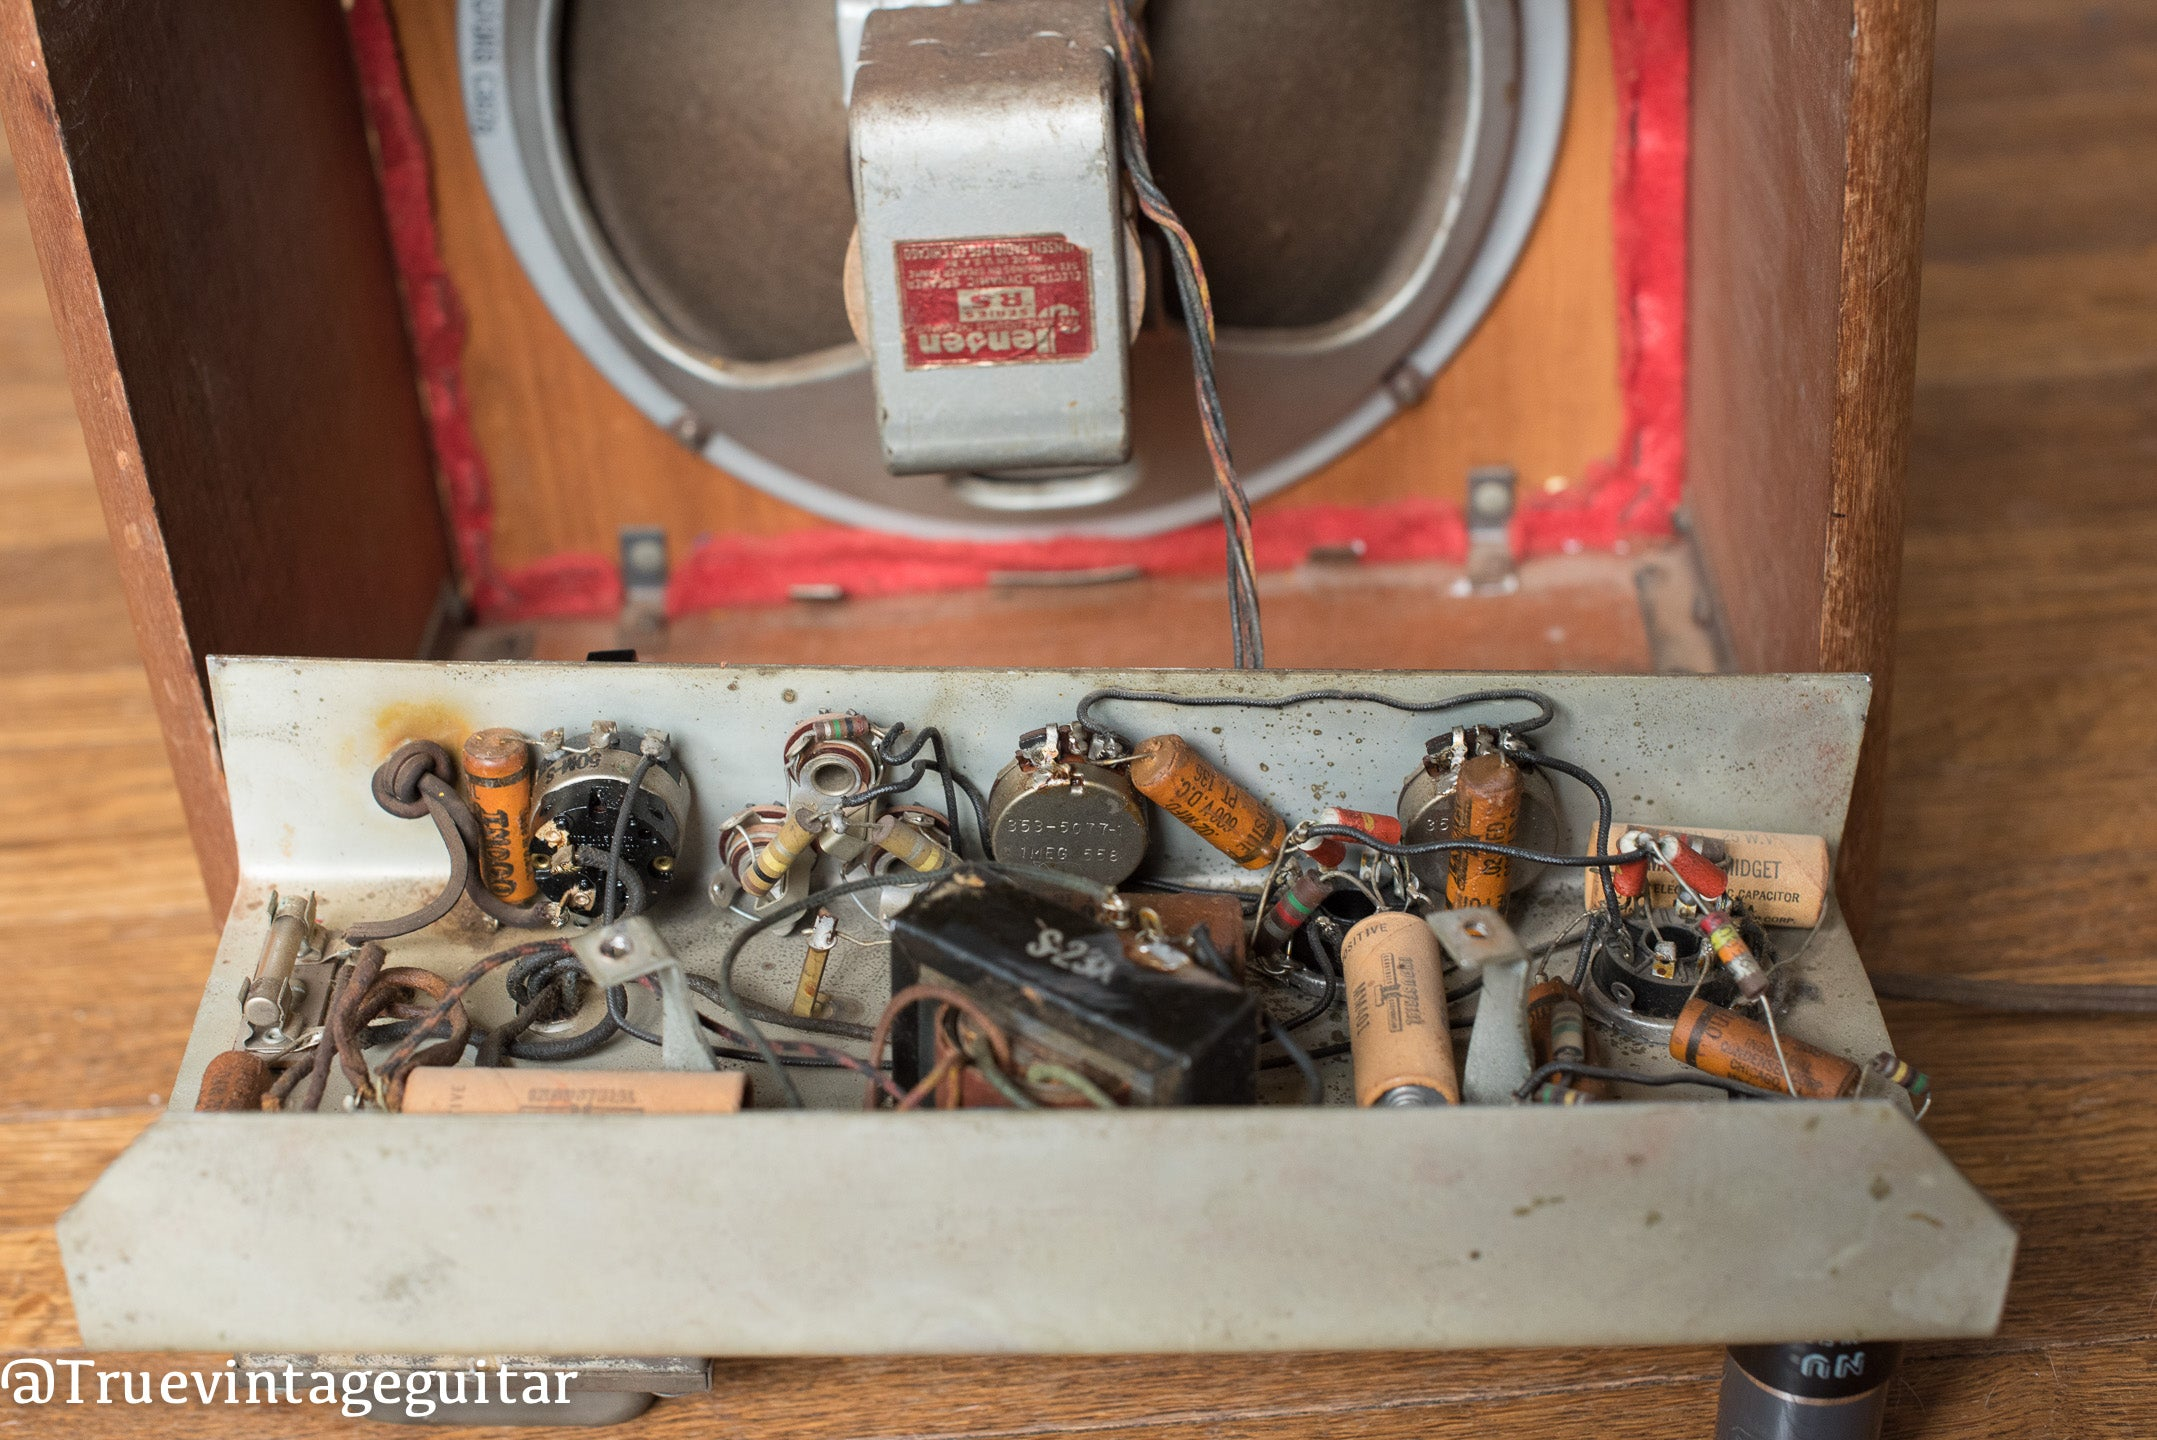 Chassis, circuit, 1946 Fender Model 26 Red grill cloth Walnut cabinet